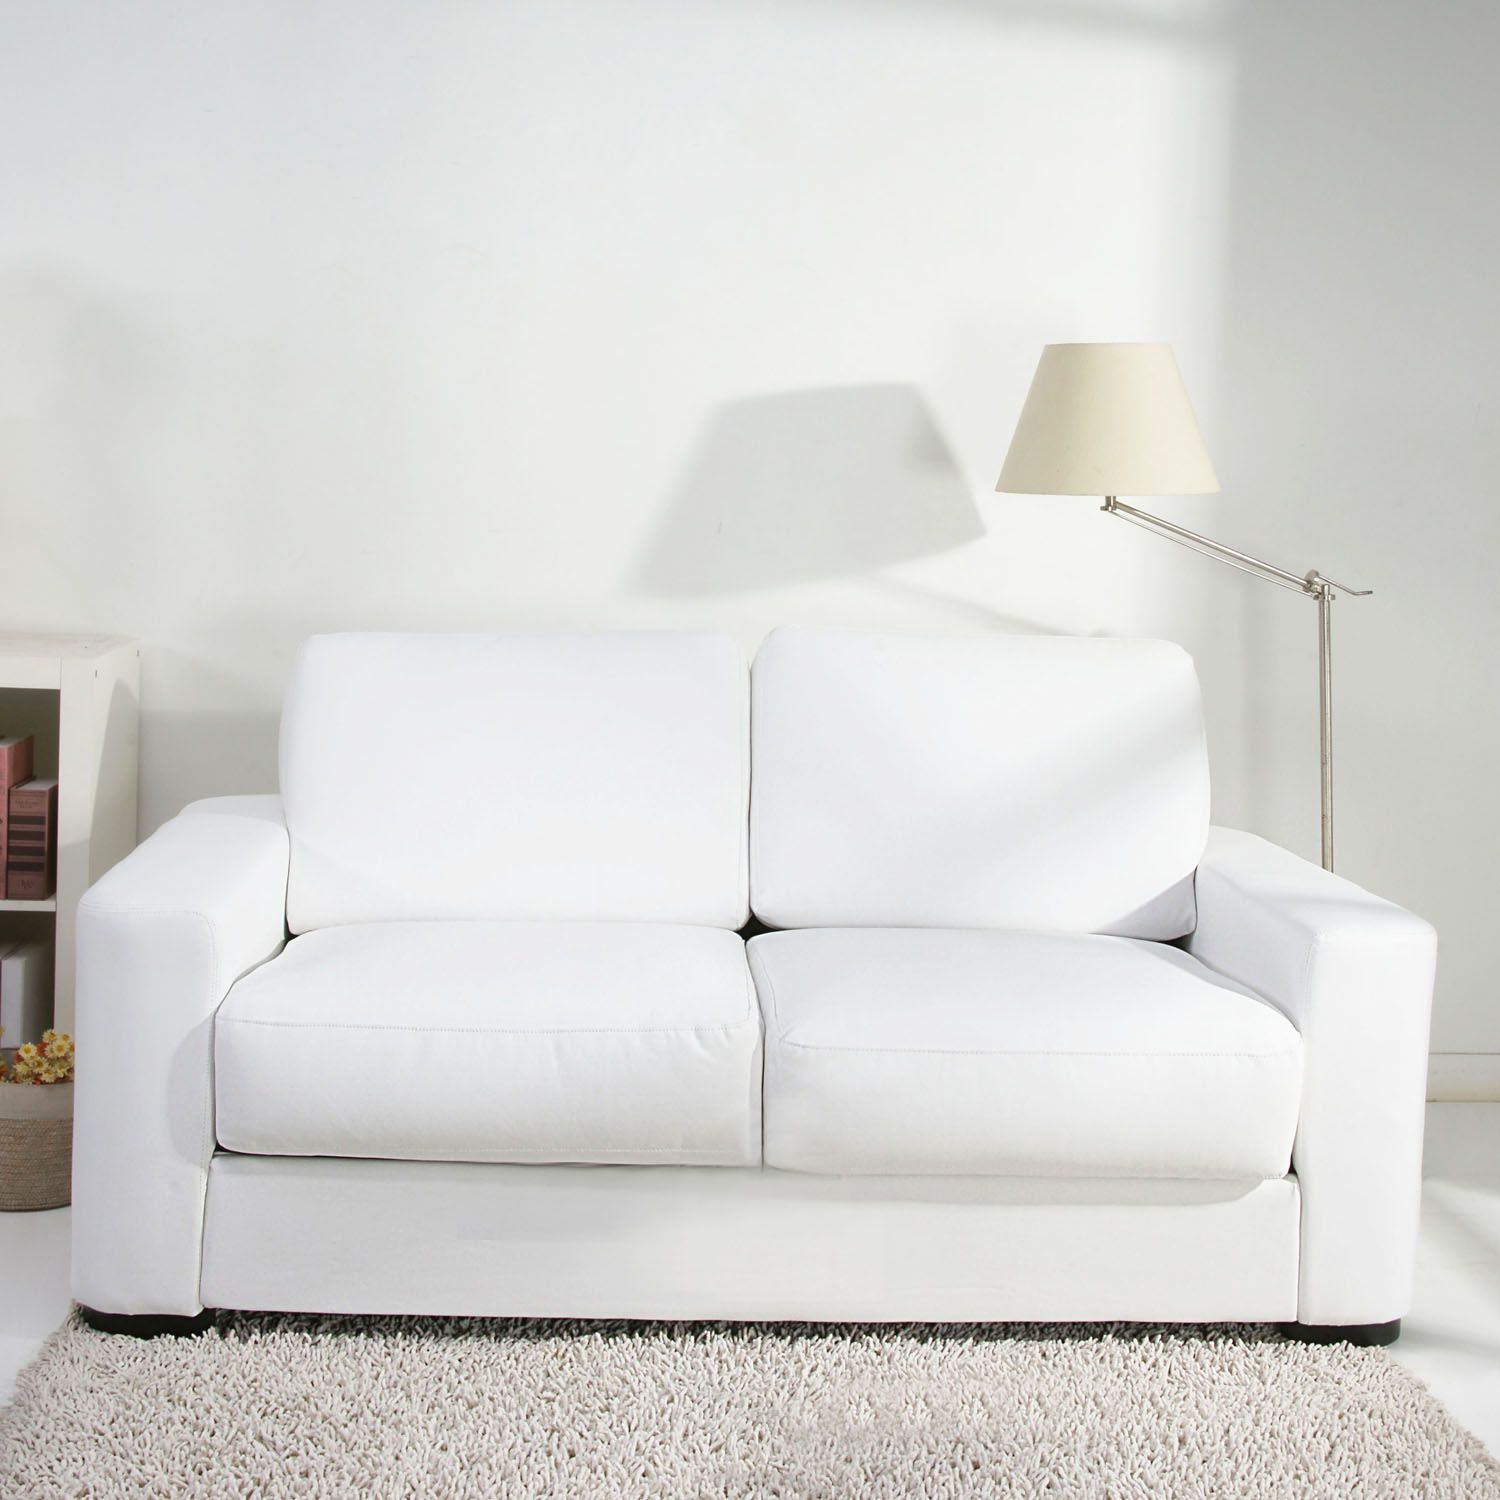 Small White Leather Sofa Small White Leather Sofa Avarii